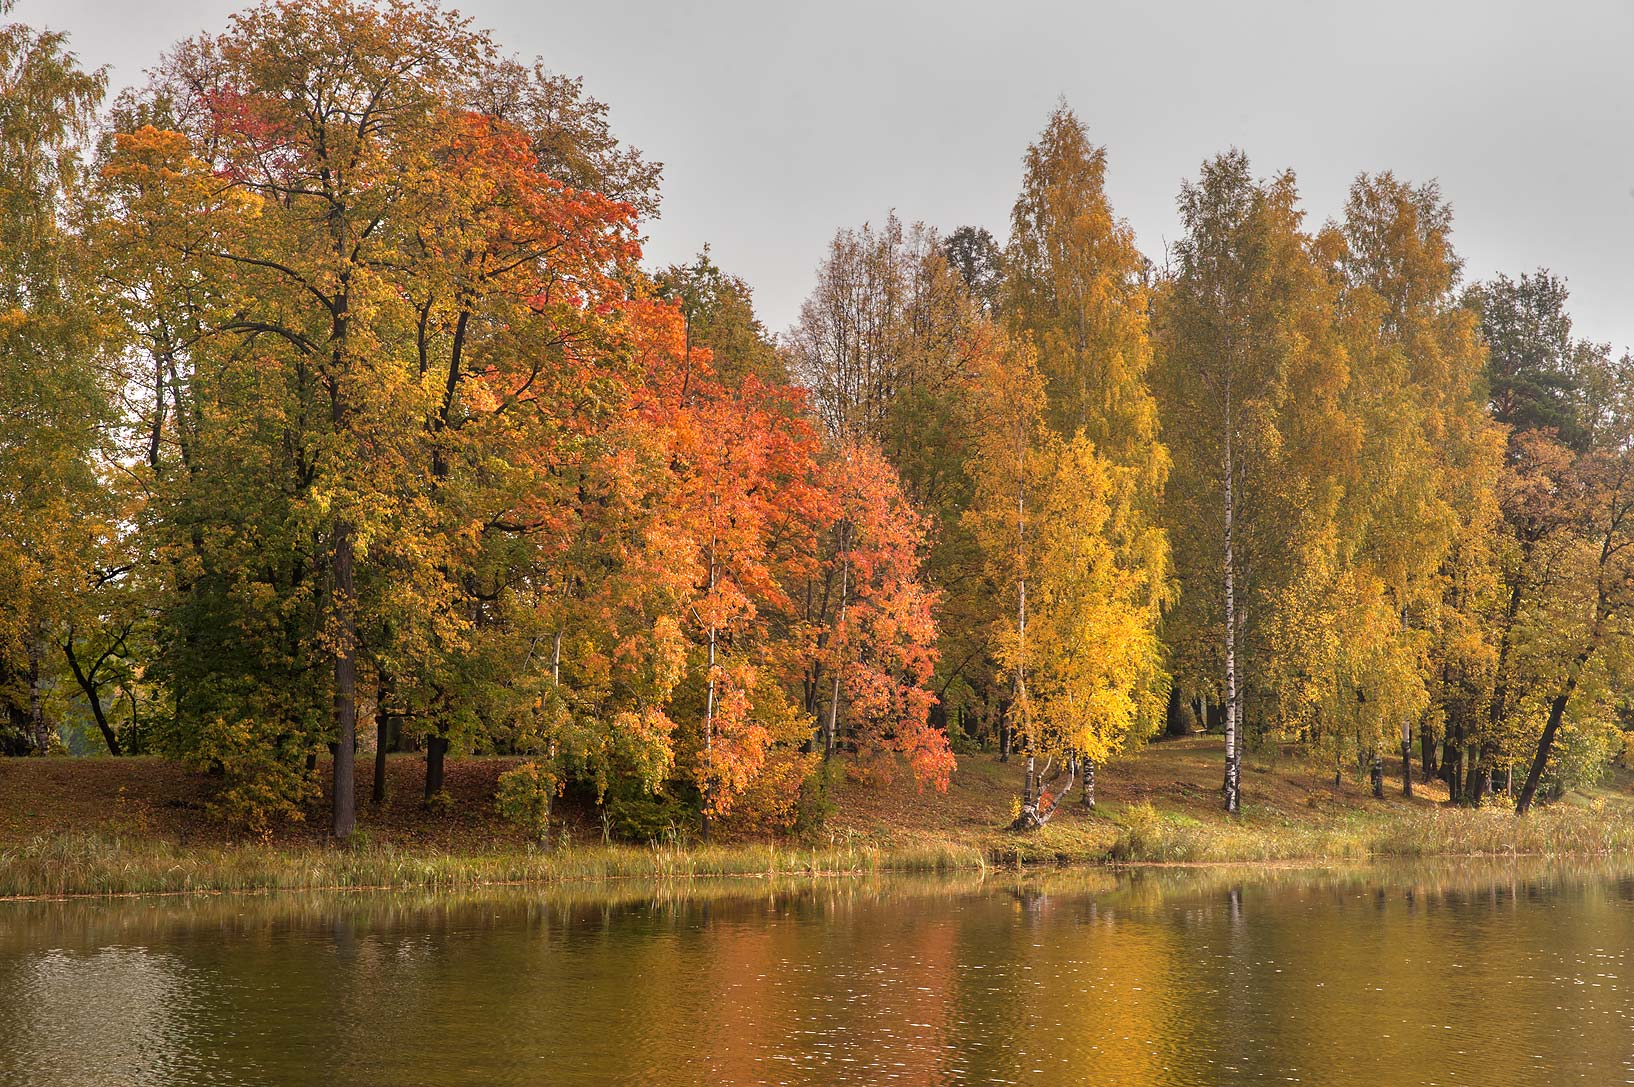 South-west end of Beloe Lake in Gatchina, a suburb of St.Petersburg. Russia